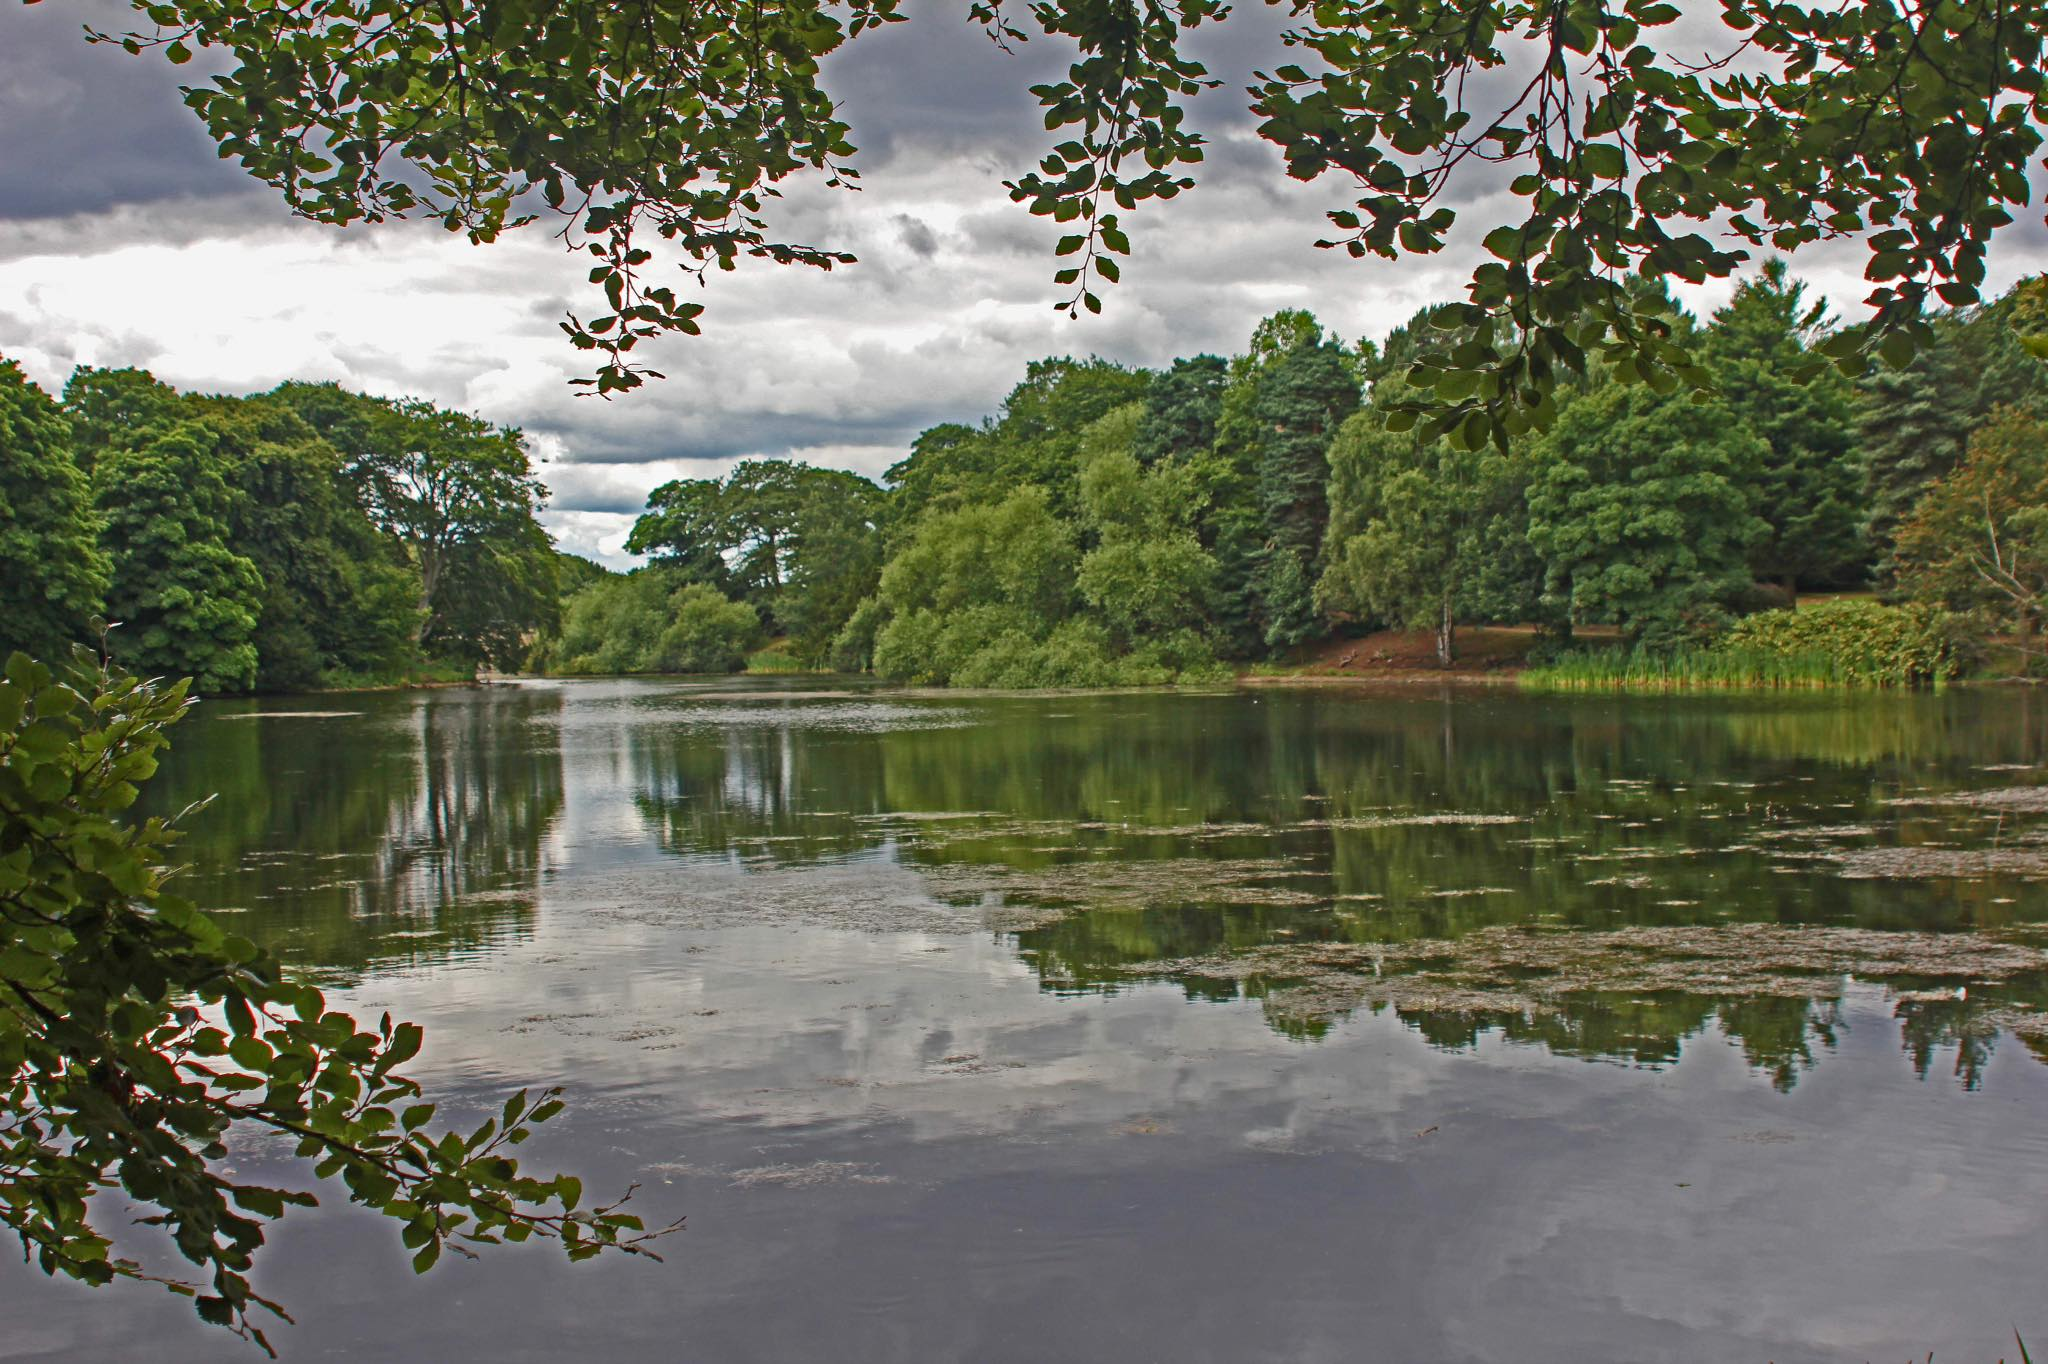 Lake at Nostell Priory by Ed Armstrong